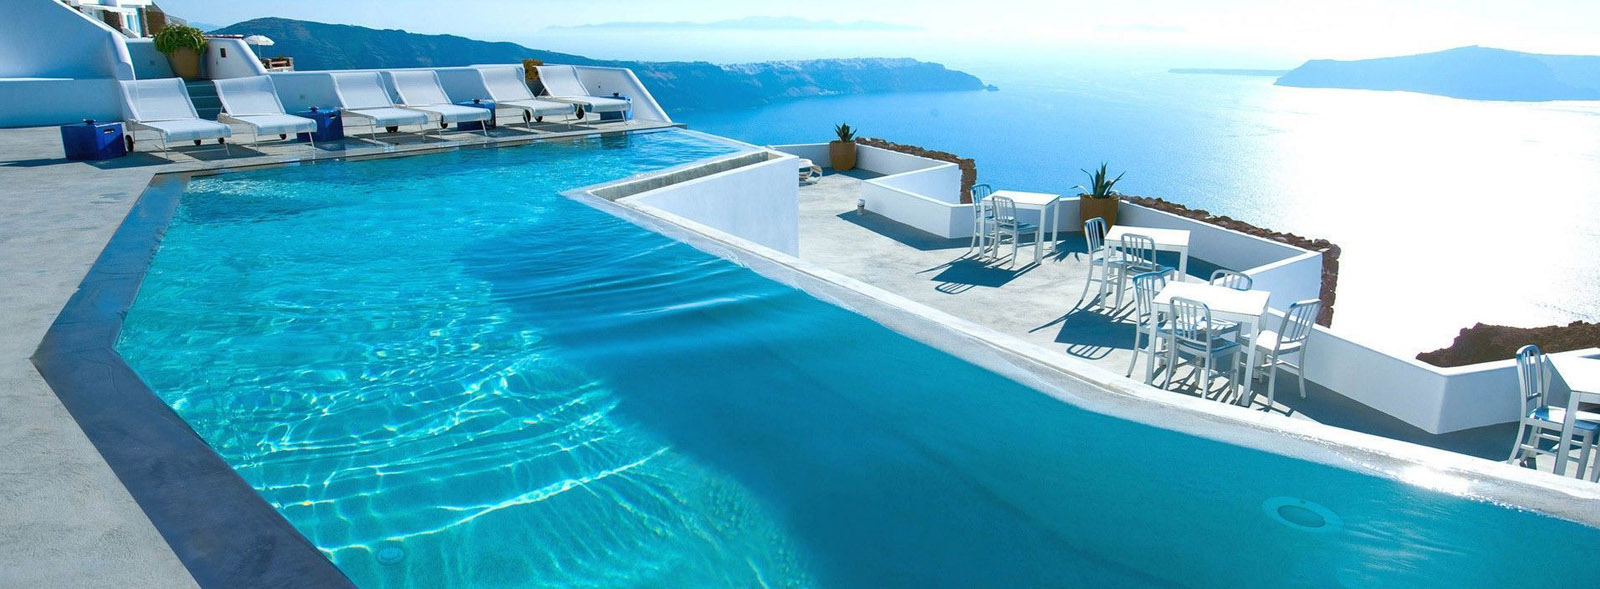 salt water swimming pool chlorinators suppliers southern suburbs and atlantic seaboard cape town